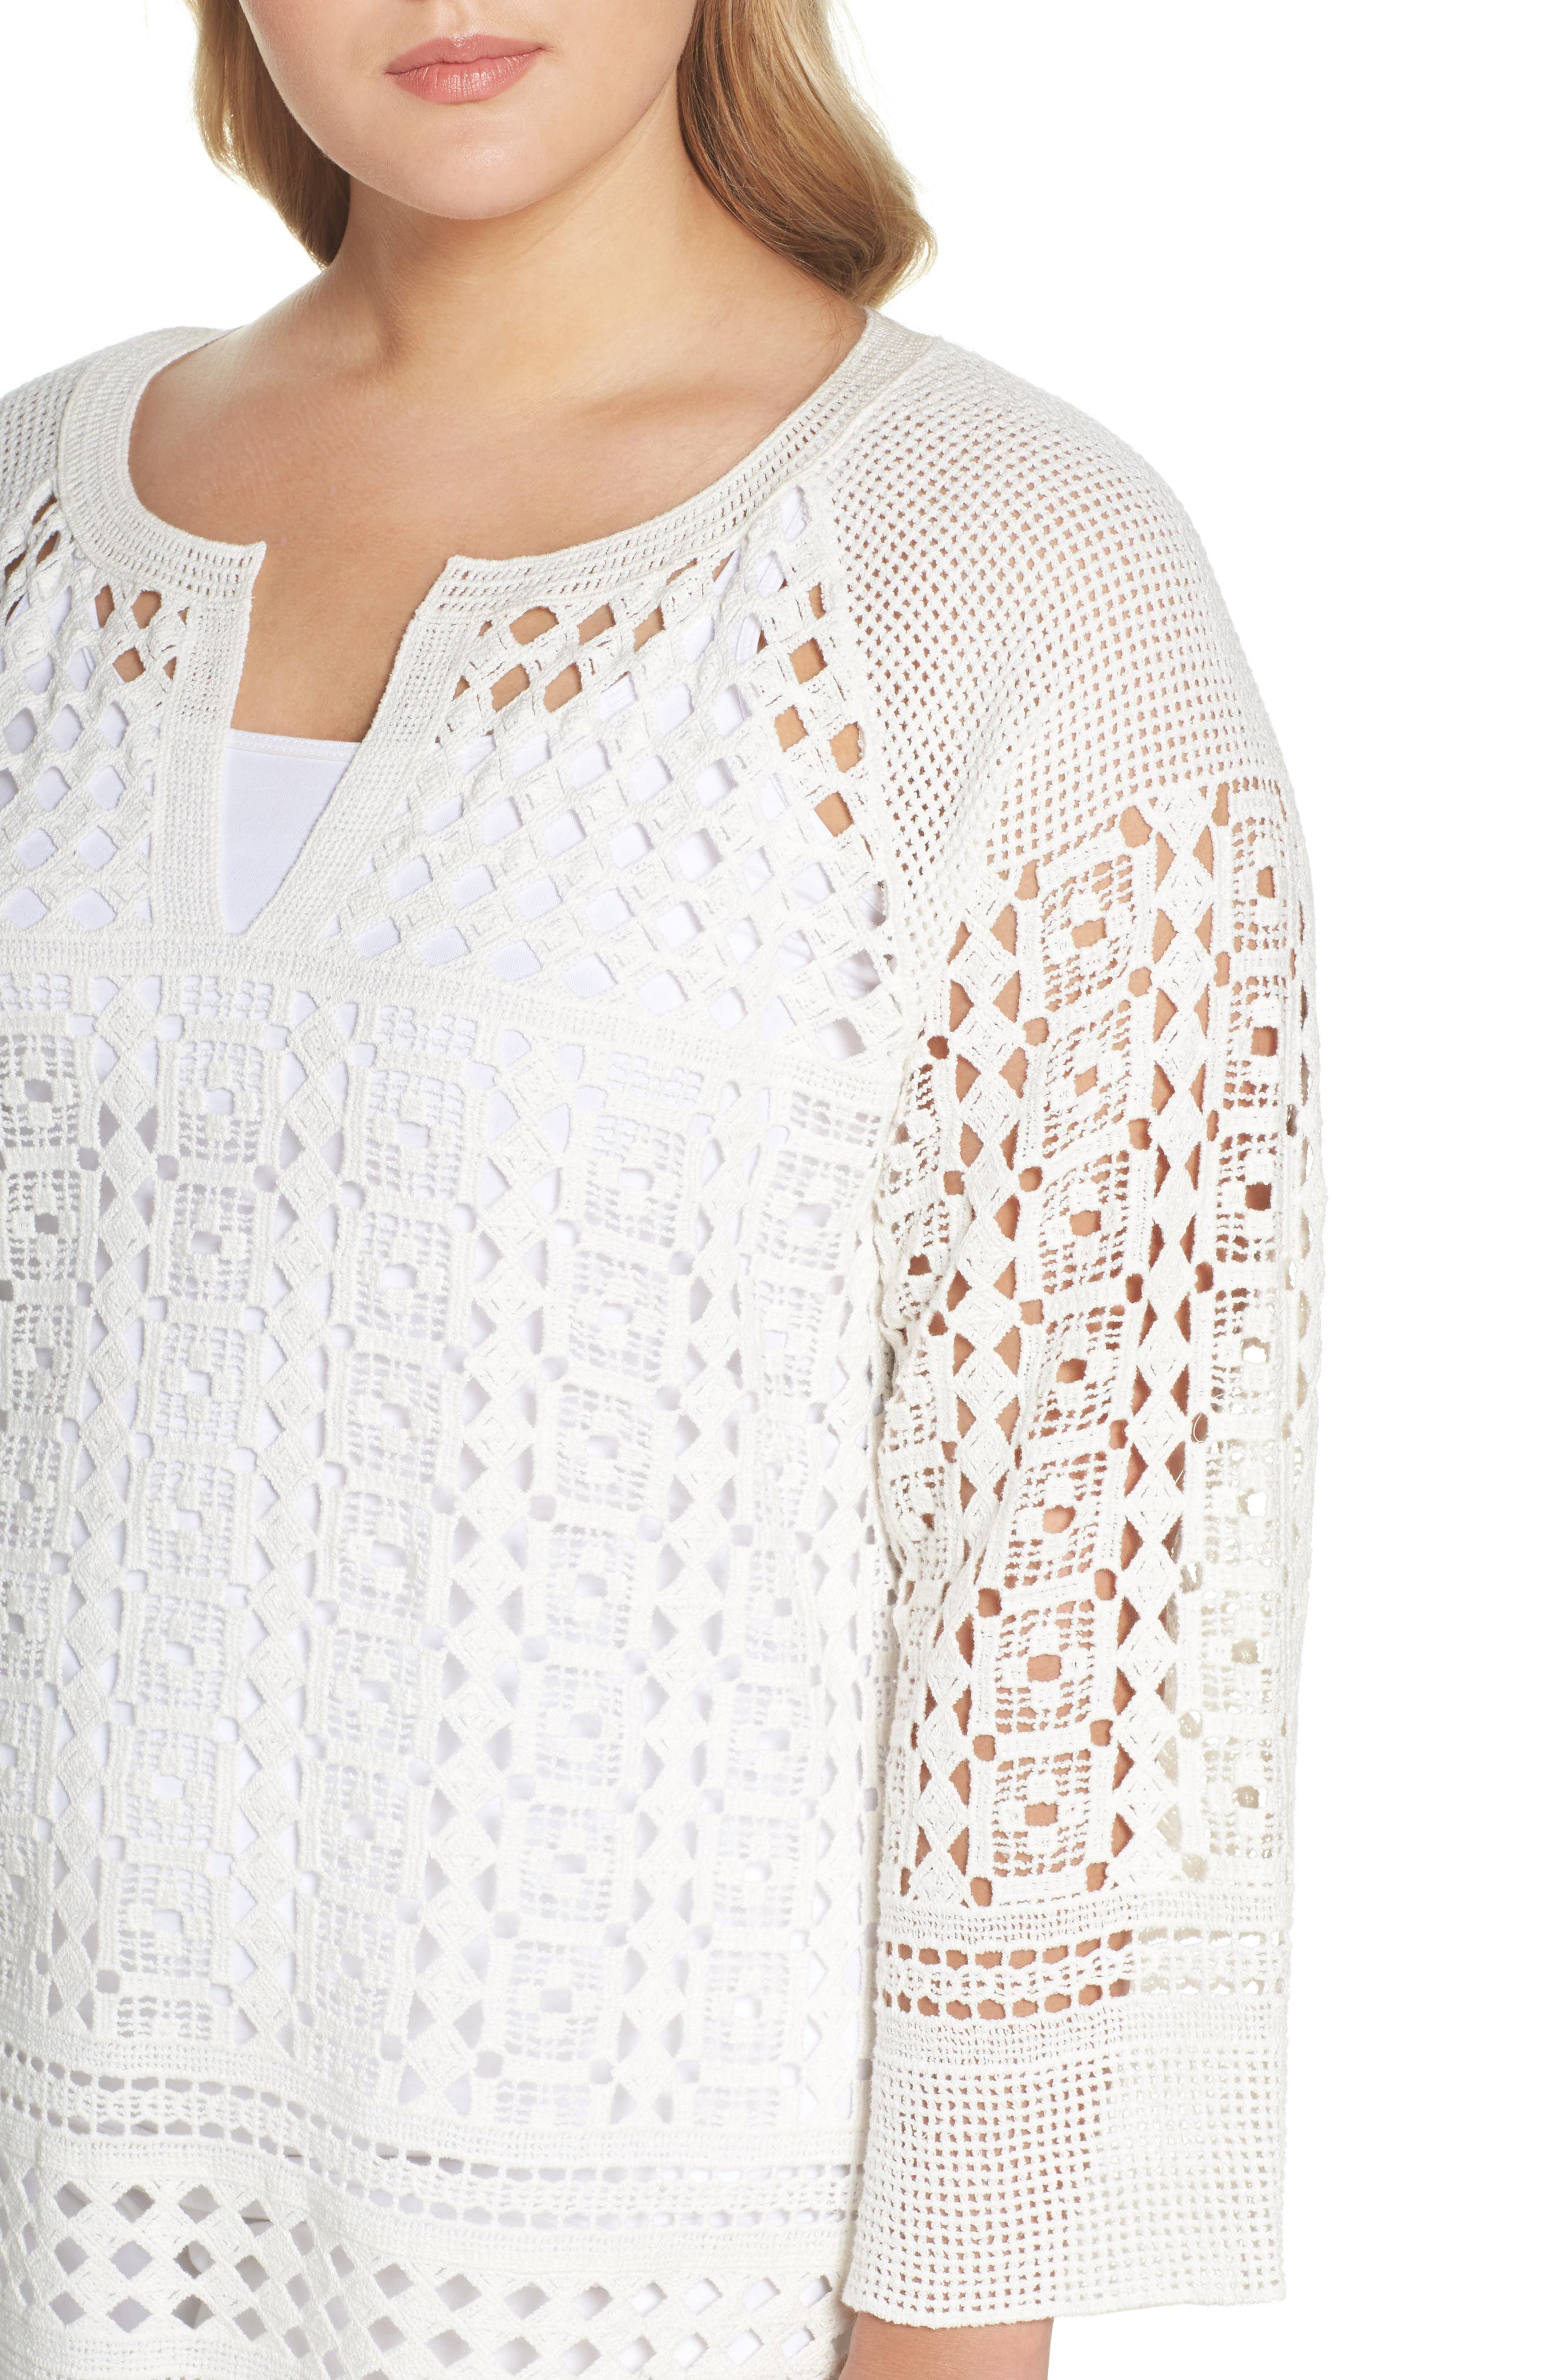 Free Spirit Lace Tunic,                             Alternate thumbnail 4, color,                             Paper Whit